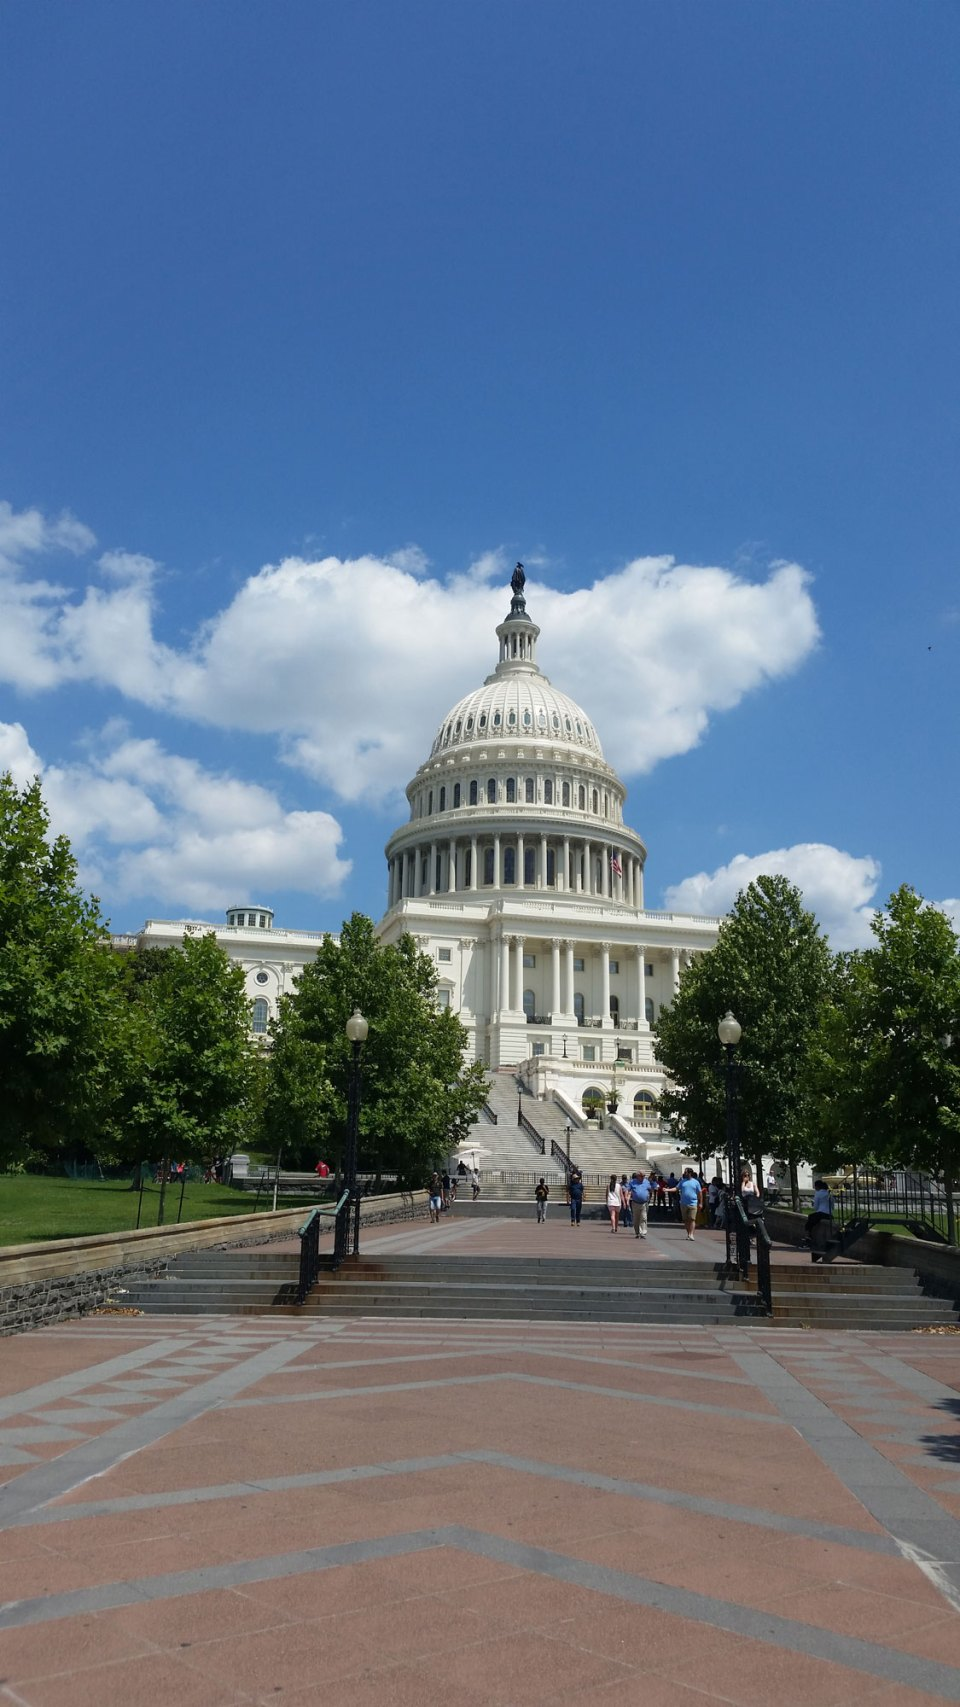 The United States Capitol.